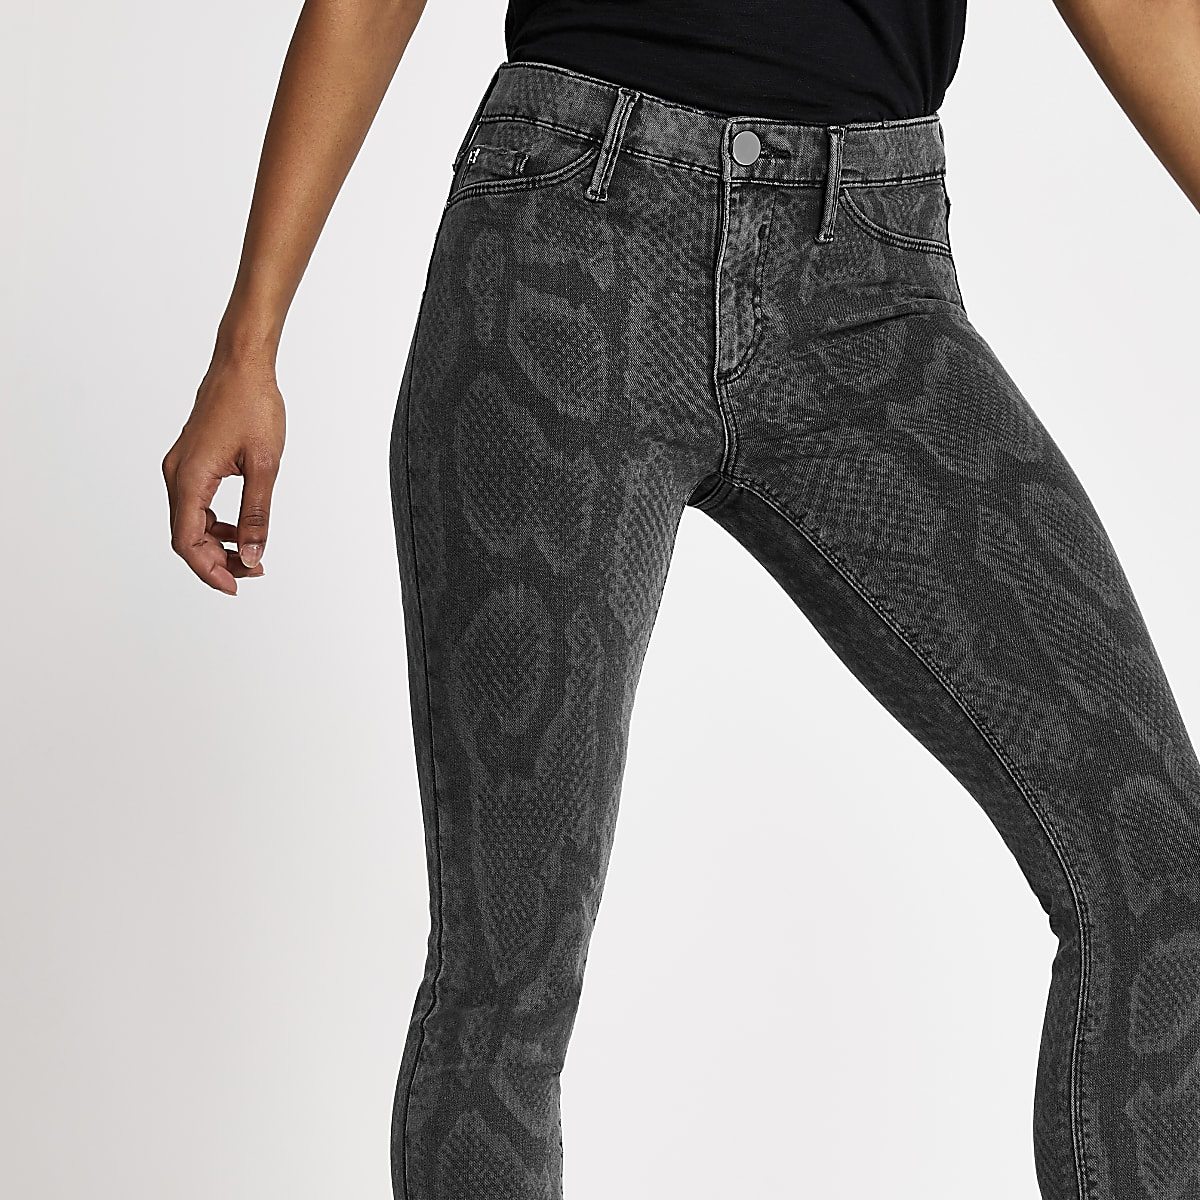 Petite black Molly printed skinny jeggings